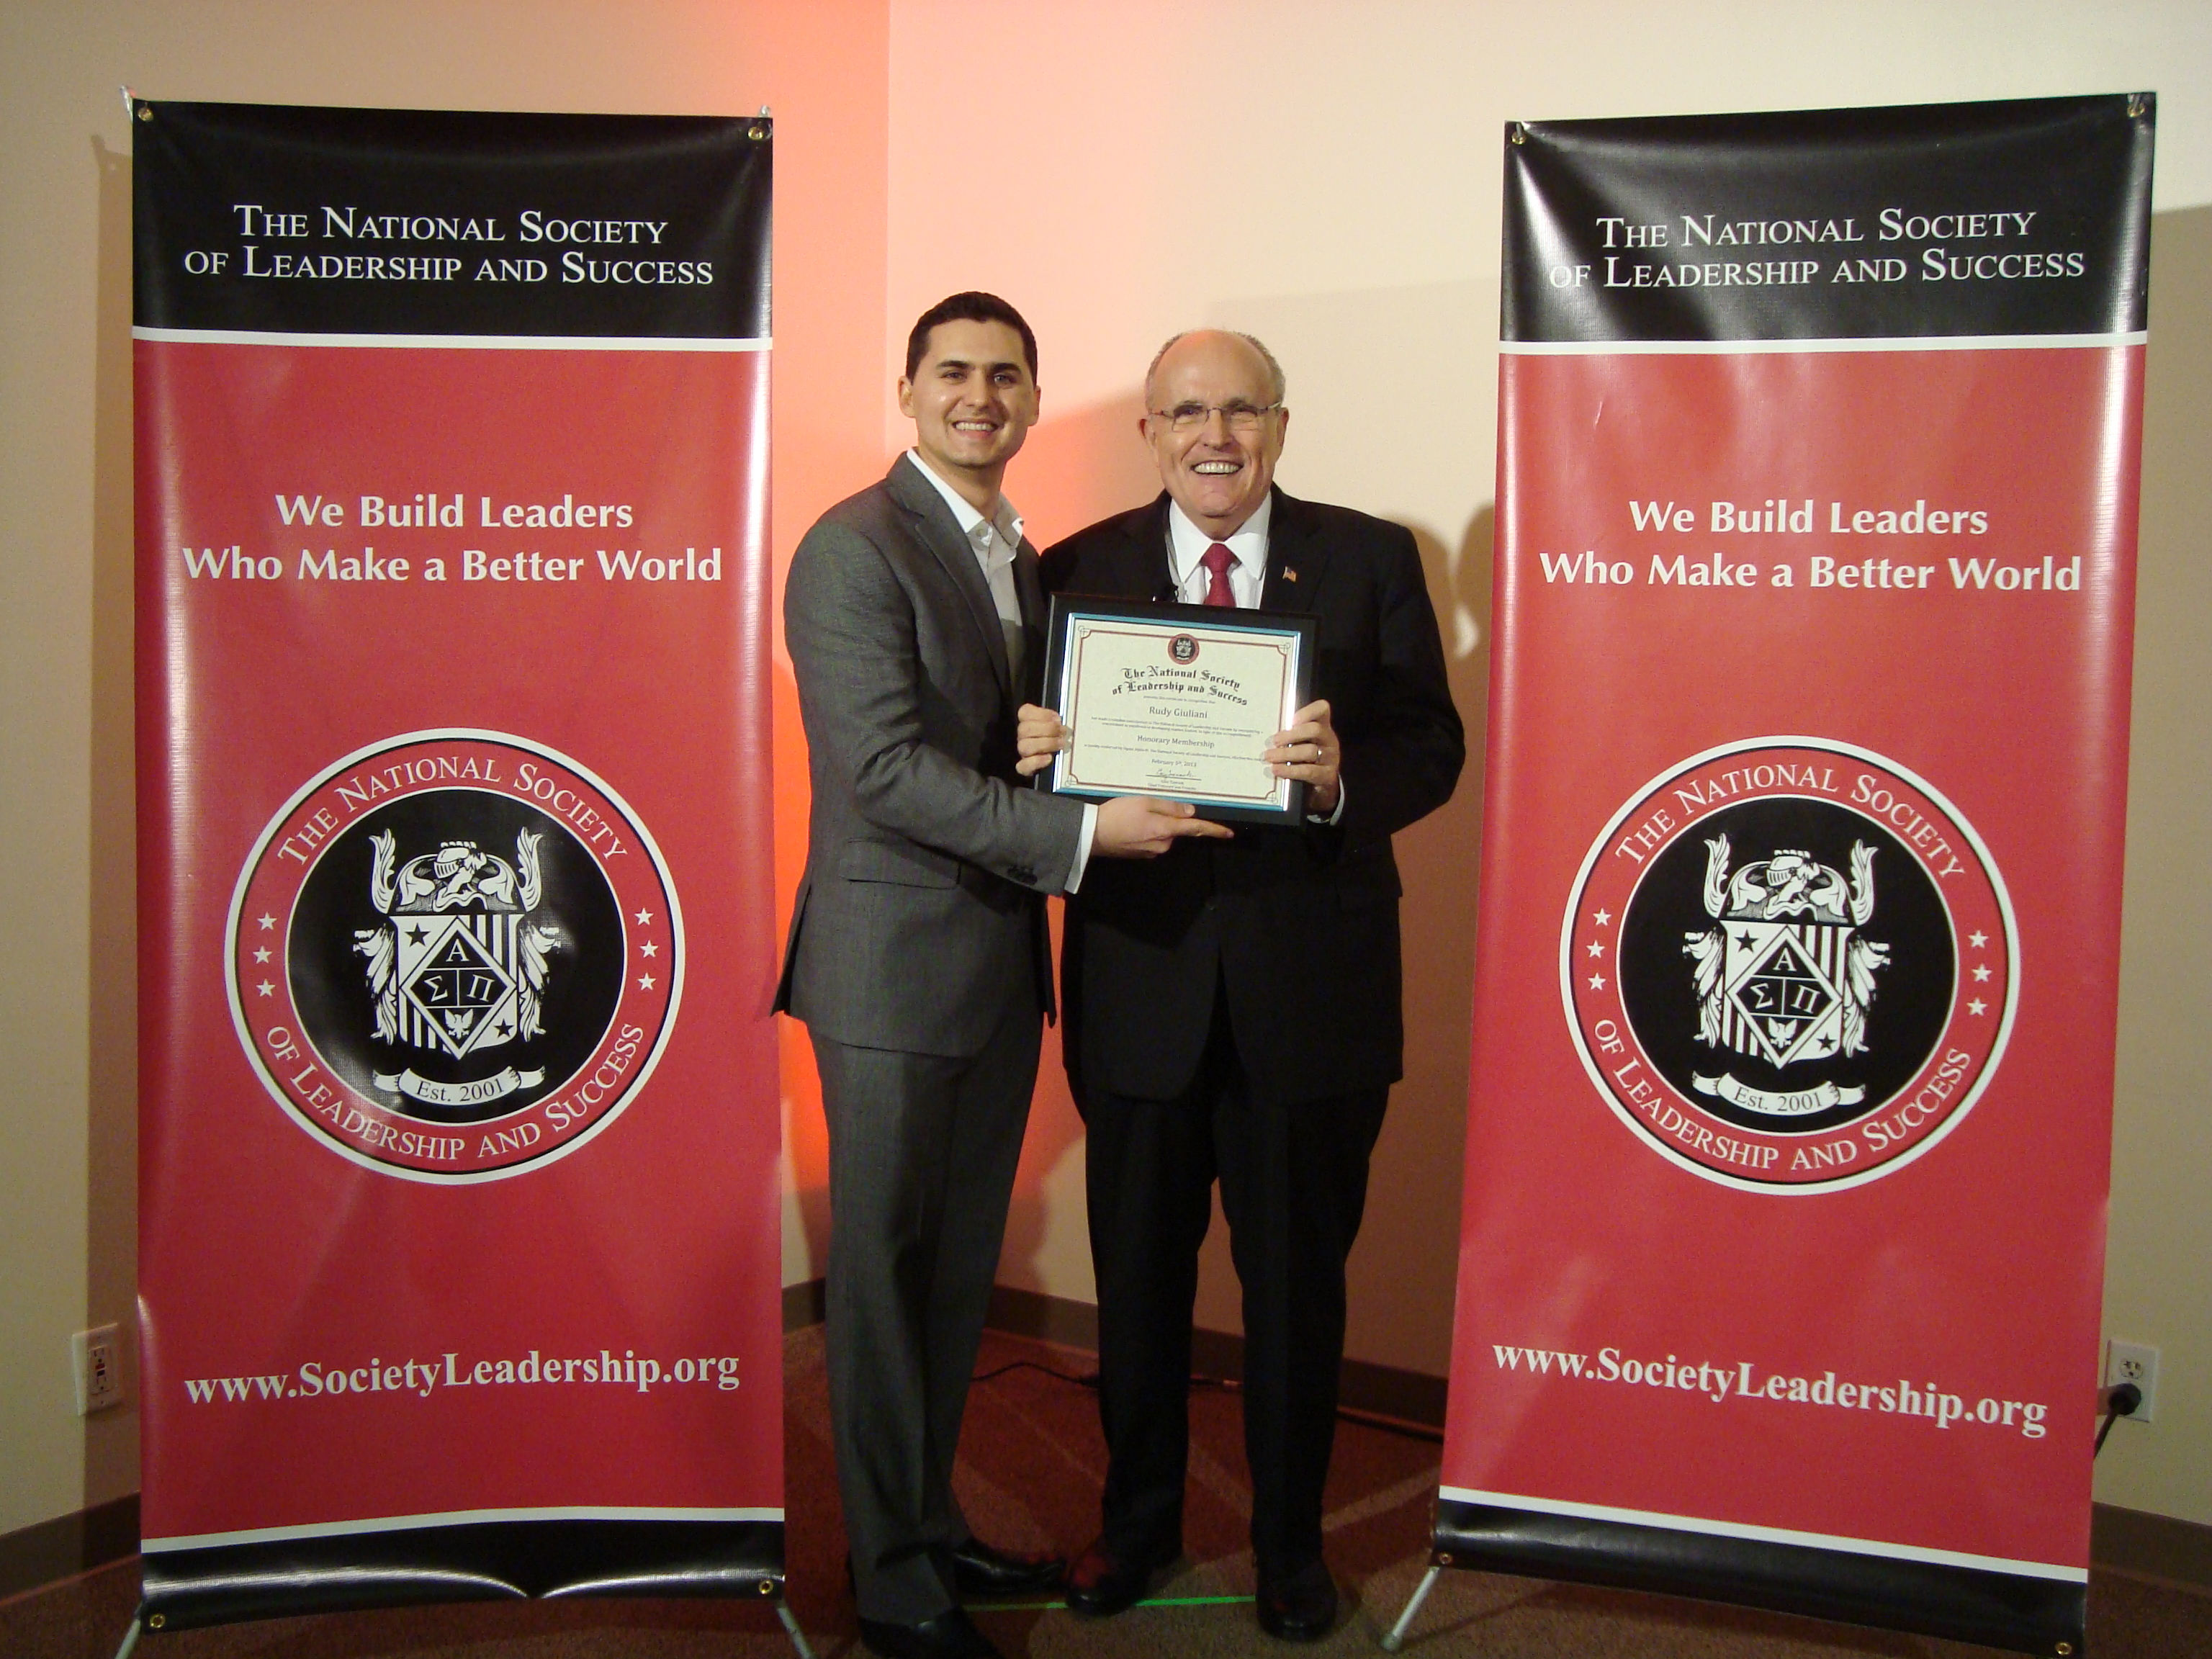 national society of leadership and success Join the national society of leadership and success chapter and develop  leadership skills at university of maryland university college.